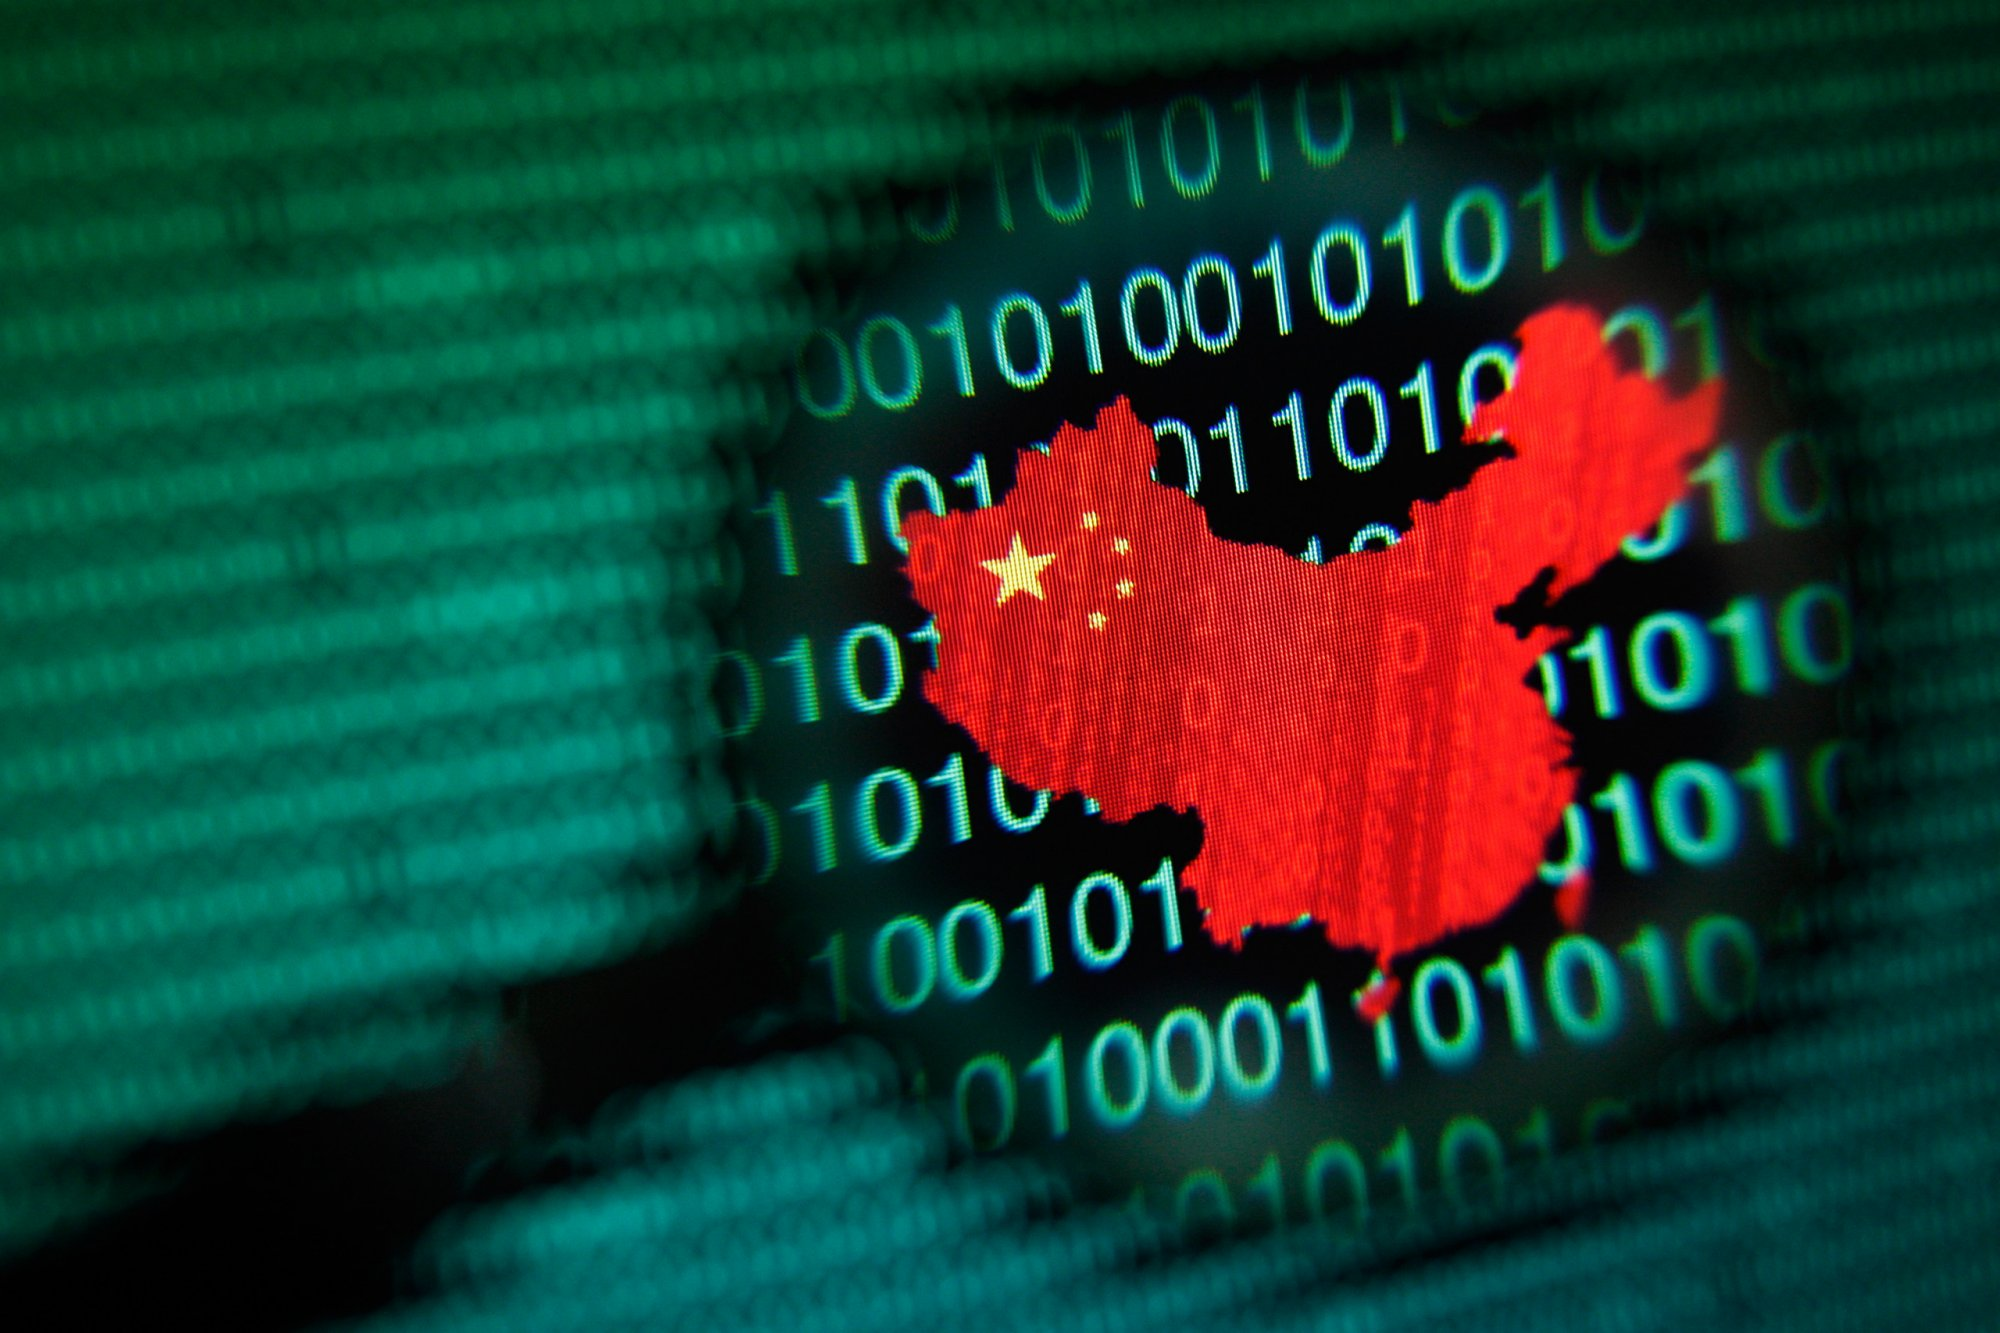 DOJ indicts two Chinese hackers, says Beijing now targeting COVID-19 research